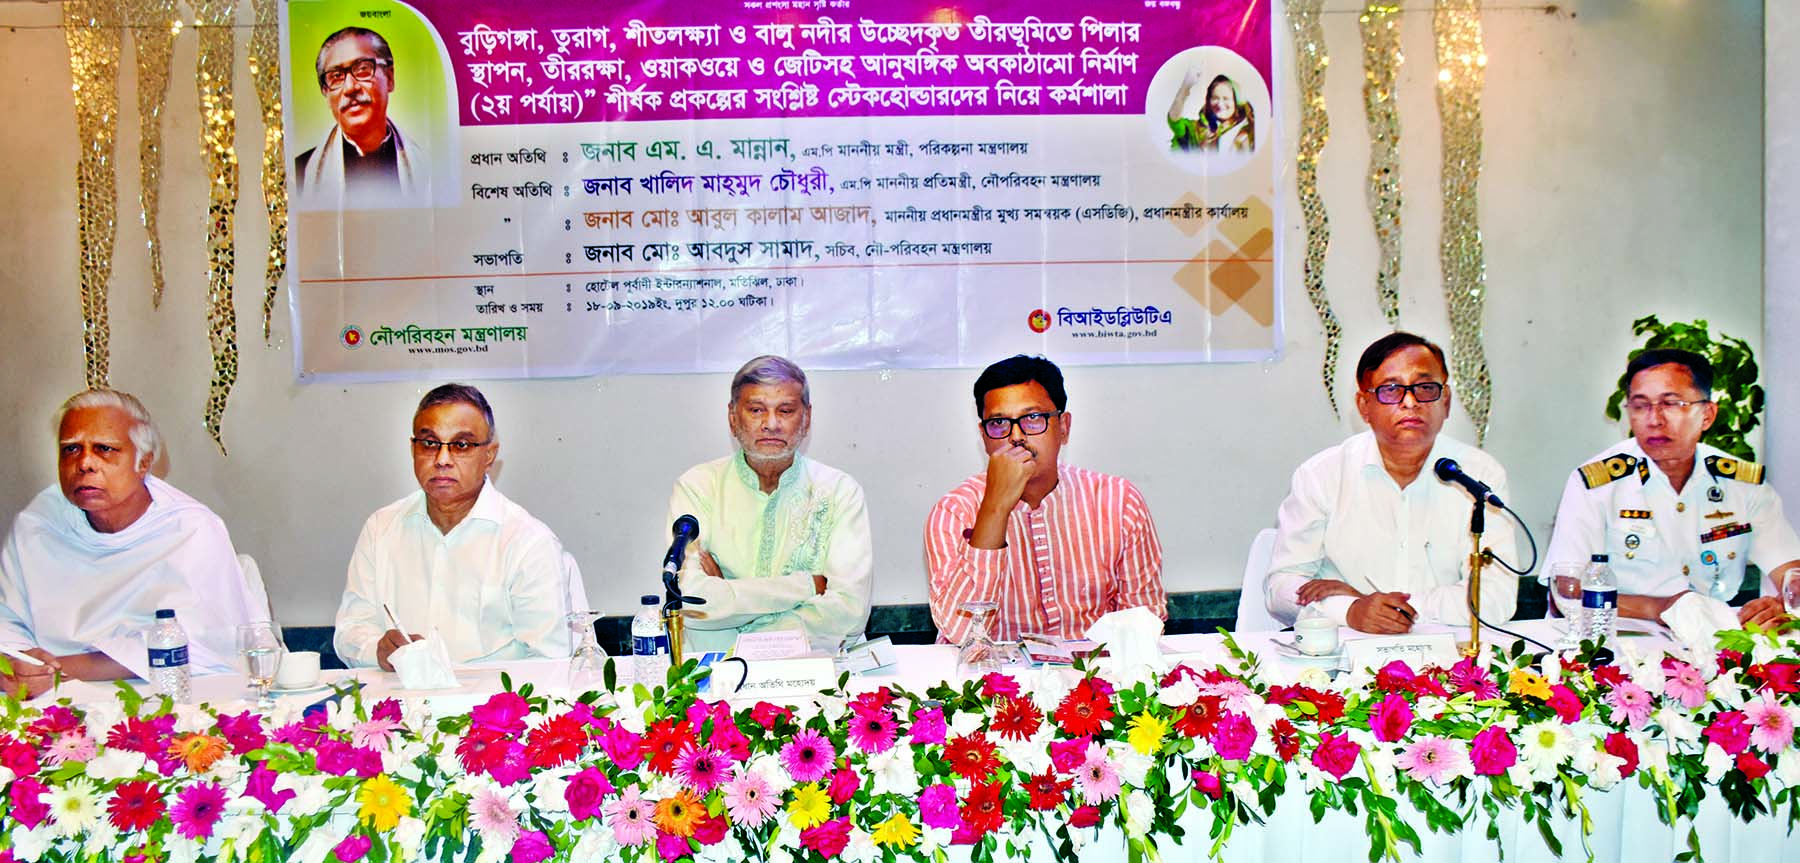 Planning Minister Abdul Mannan and State Minister for Shipping Khalid Mahmud Chowdhury, among others, at a workshop on construction of infrastructures on the banks of rivers including Buriganga, Turag and Balu at Hotel Purbani in the city on Wednesday.